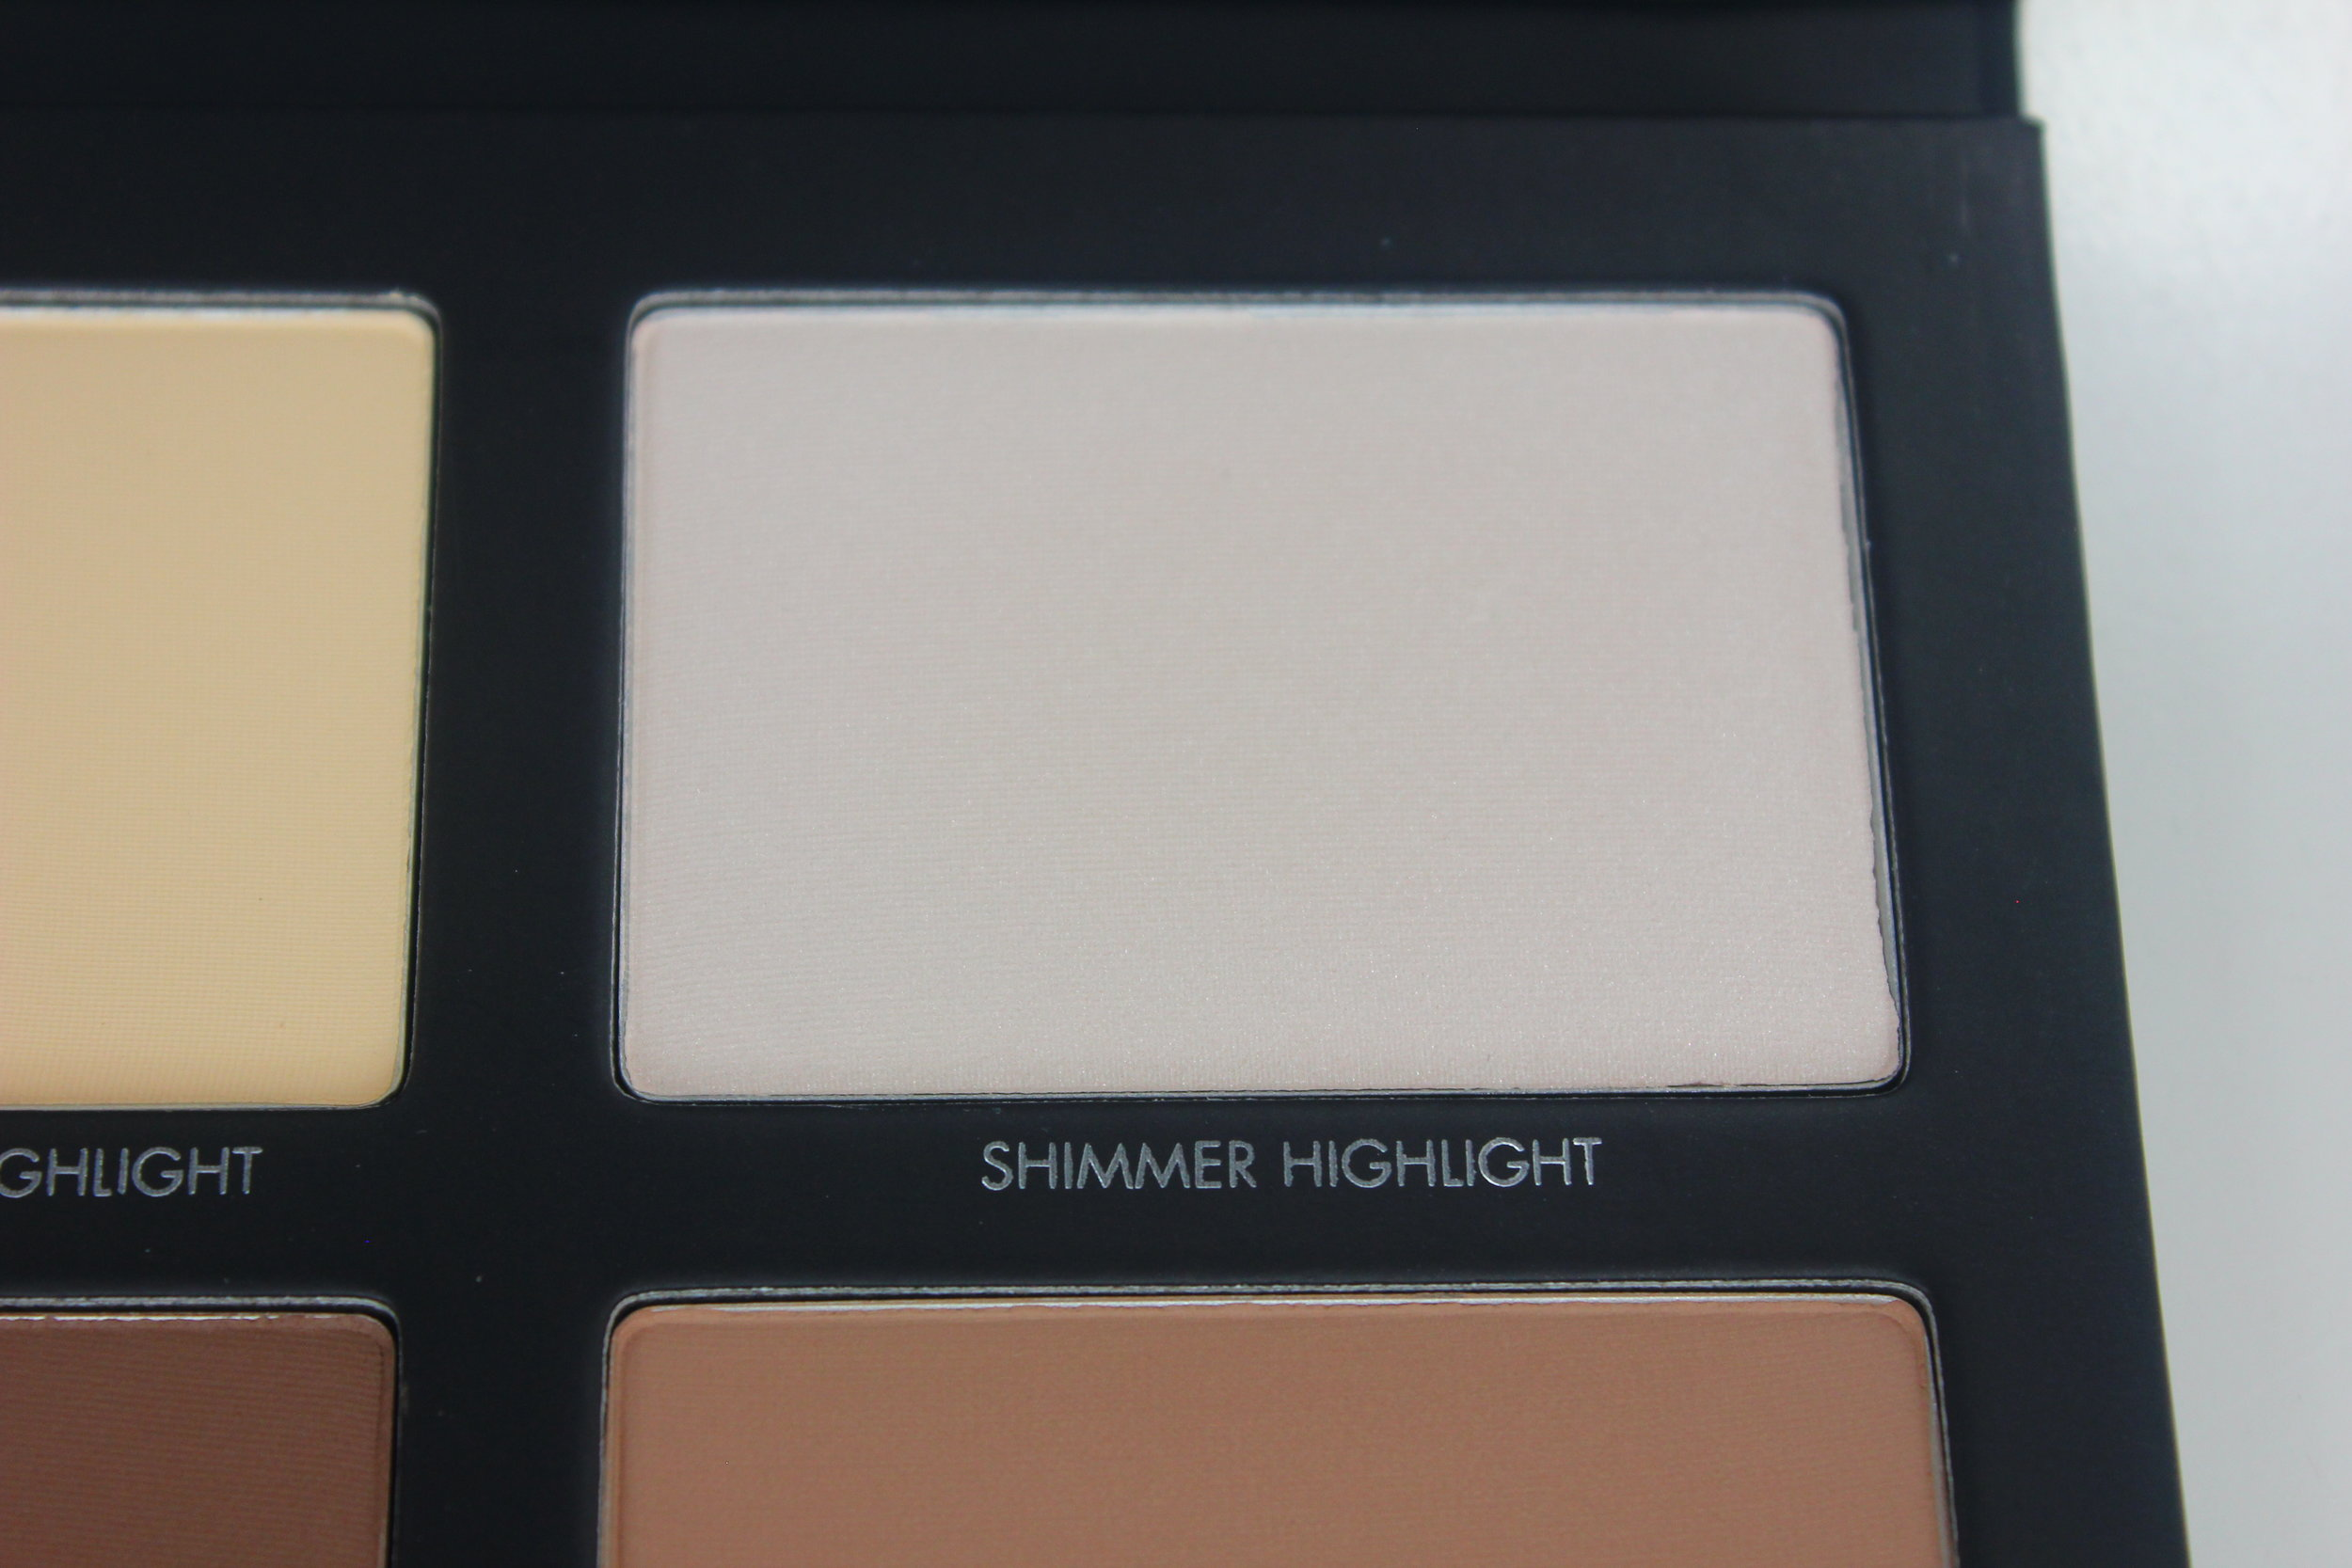 Lorac Pro Contour Palette - Shimmer Highlight Swatch 1